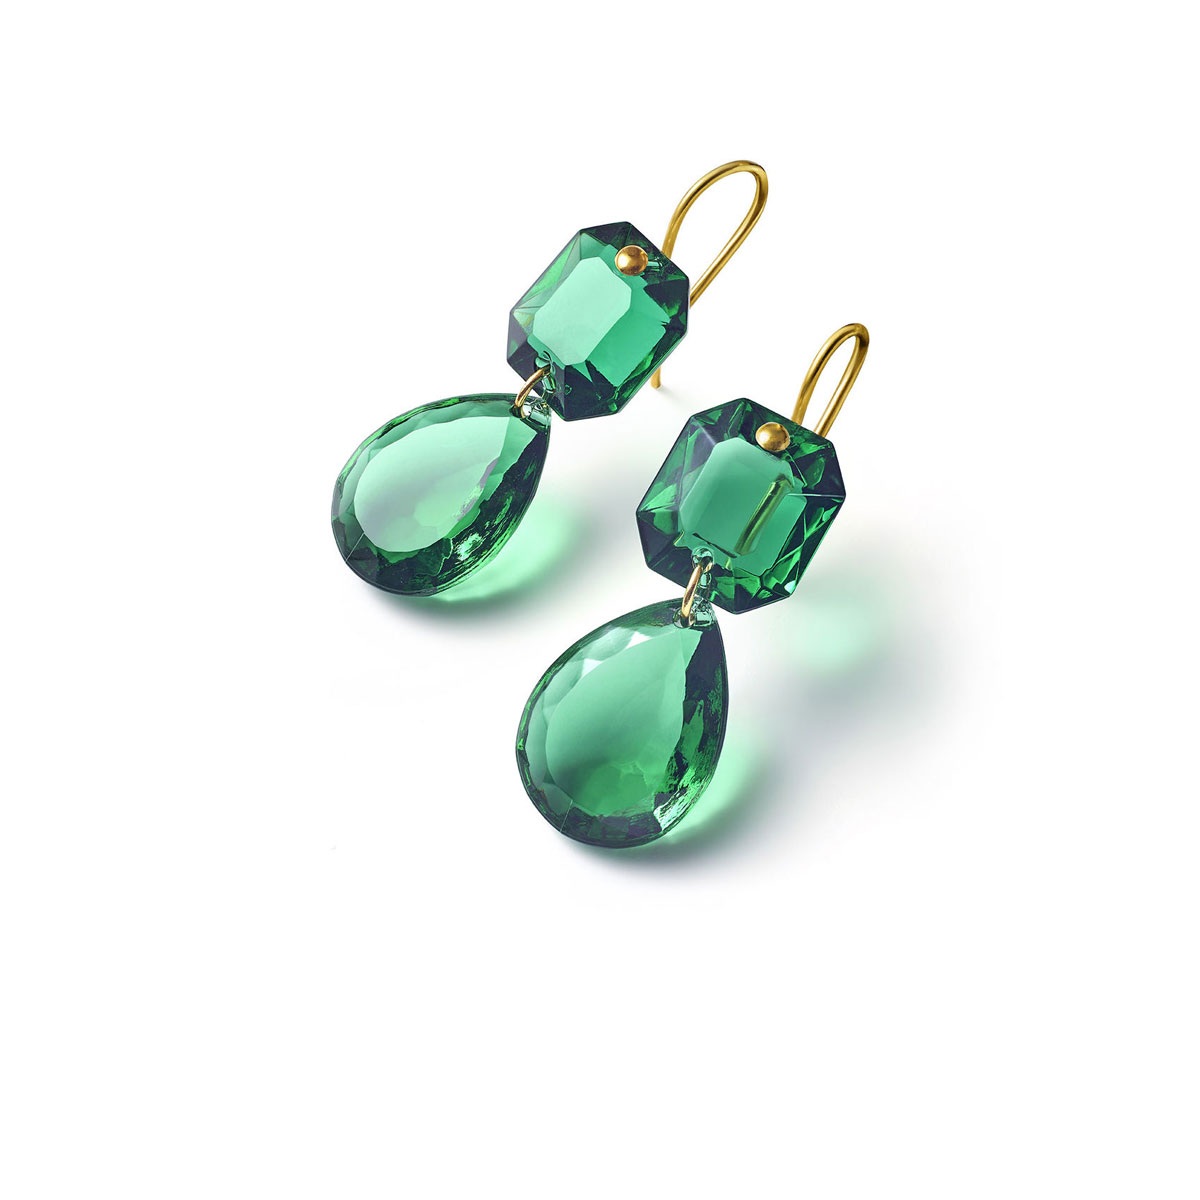 Baccarat Crystal Marie-Helene De Taillac Earrings Large Wire Vermeil Gold Green